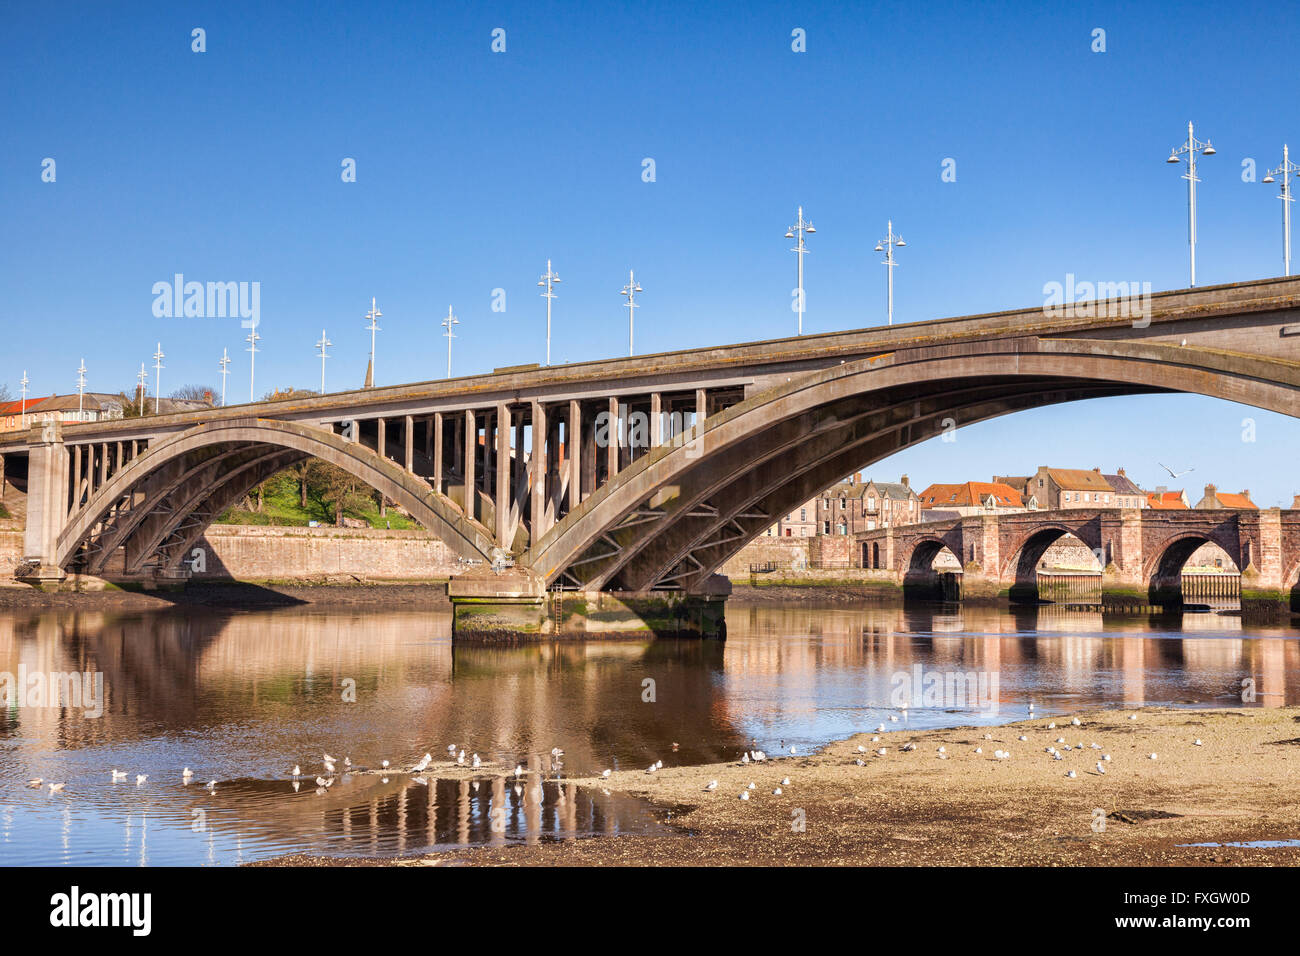 The Royal Tweed Bridge, opened in 1928, and beyond it, Berwick Old Bridge, a grade 1 listed building, opened in - Stock Image